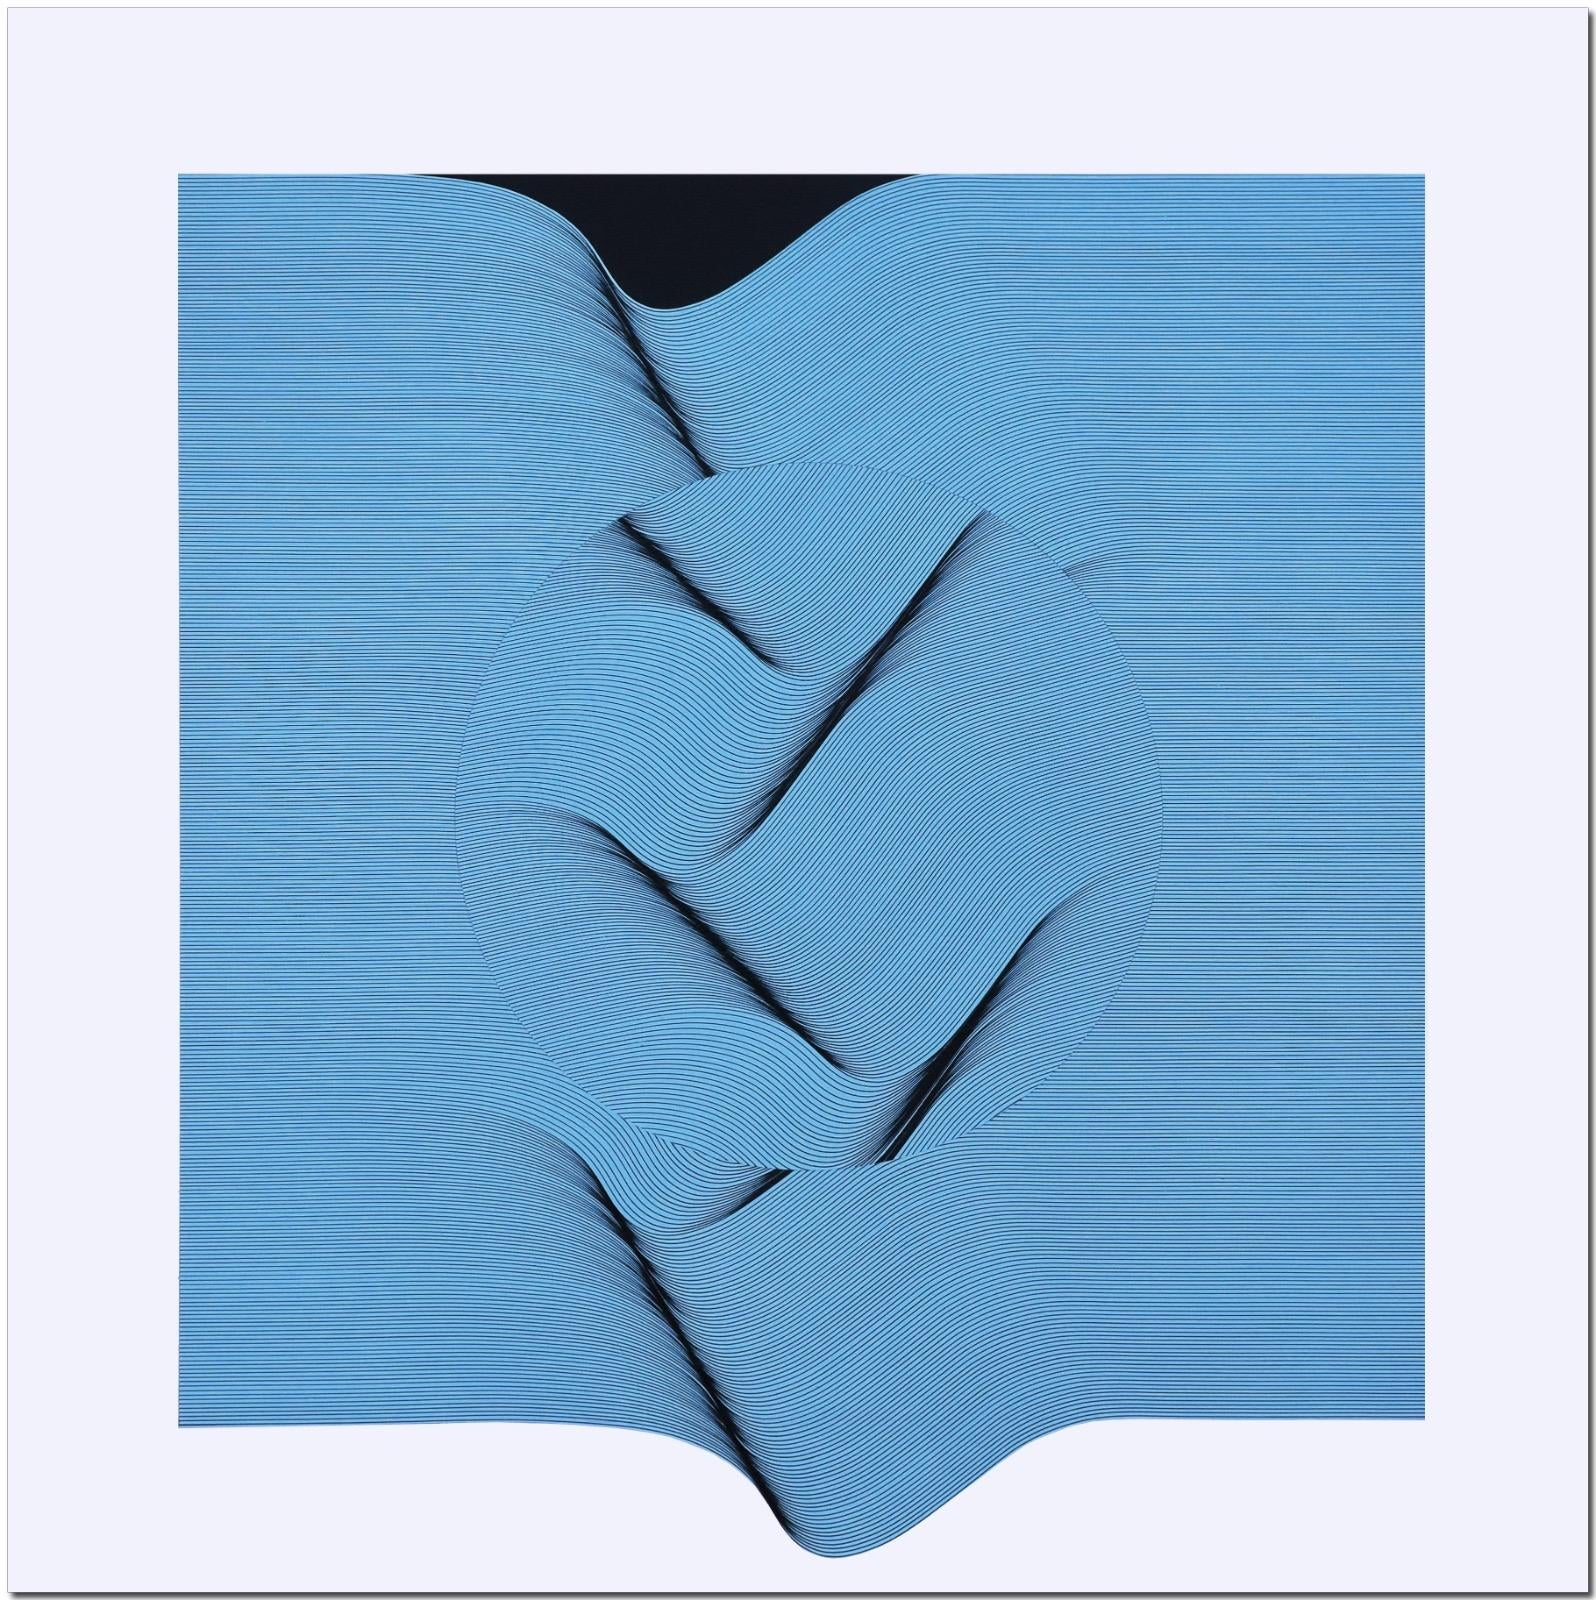 Light blue surface - geometric abstract painting